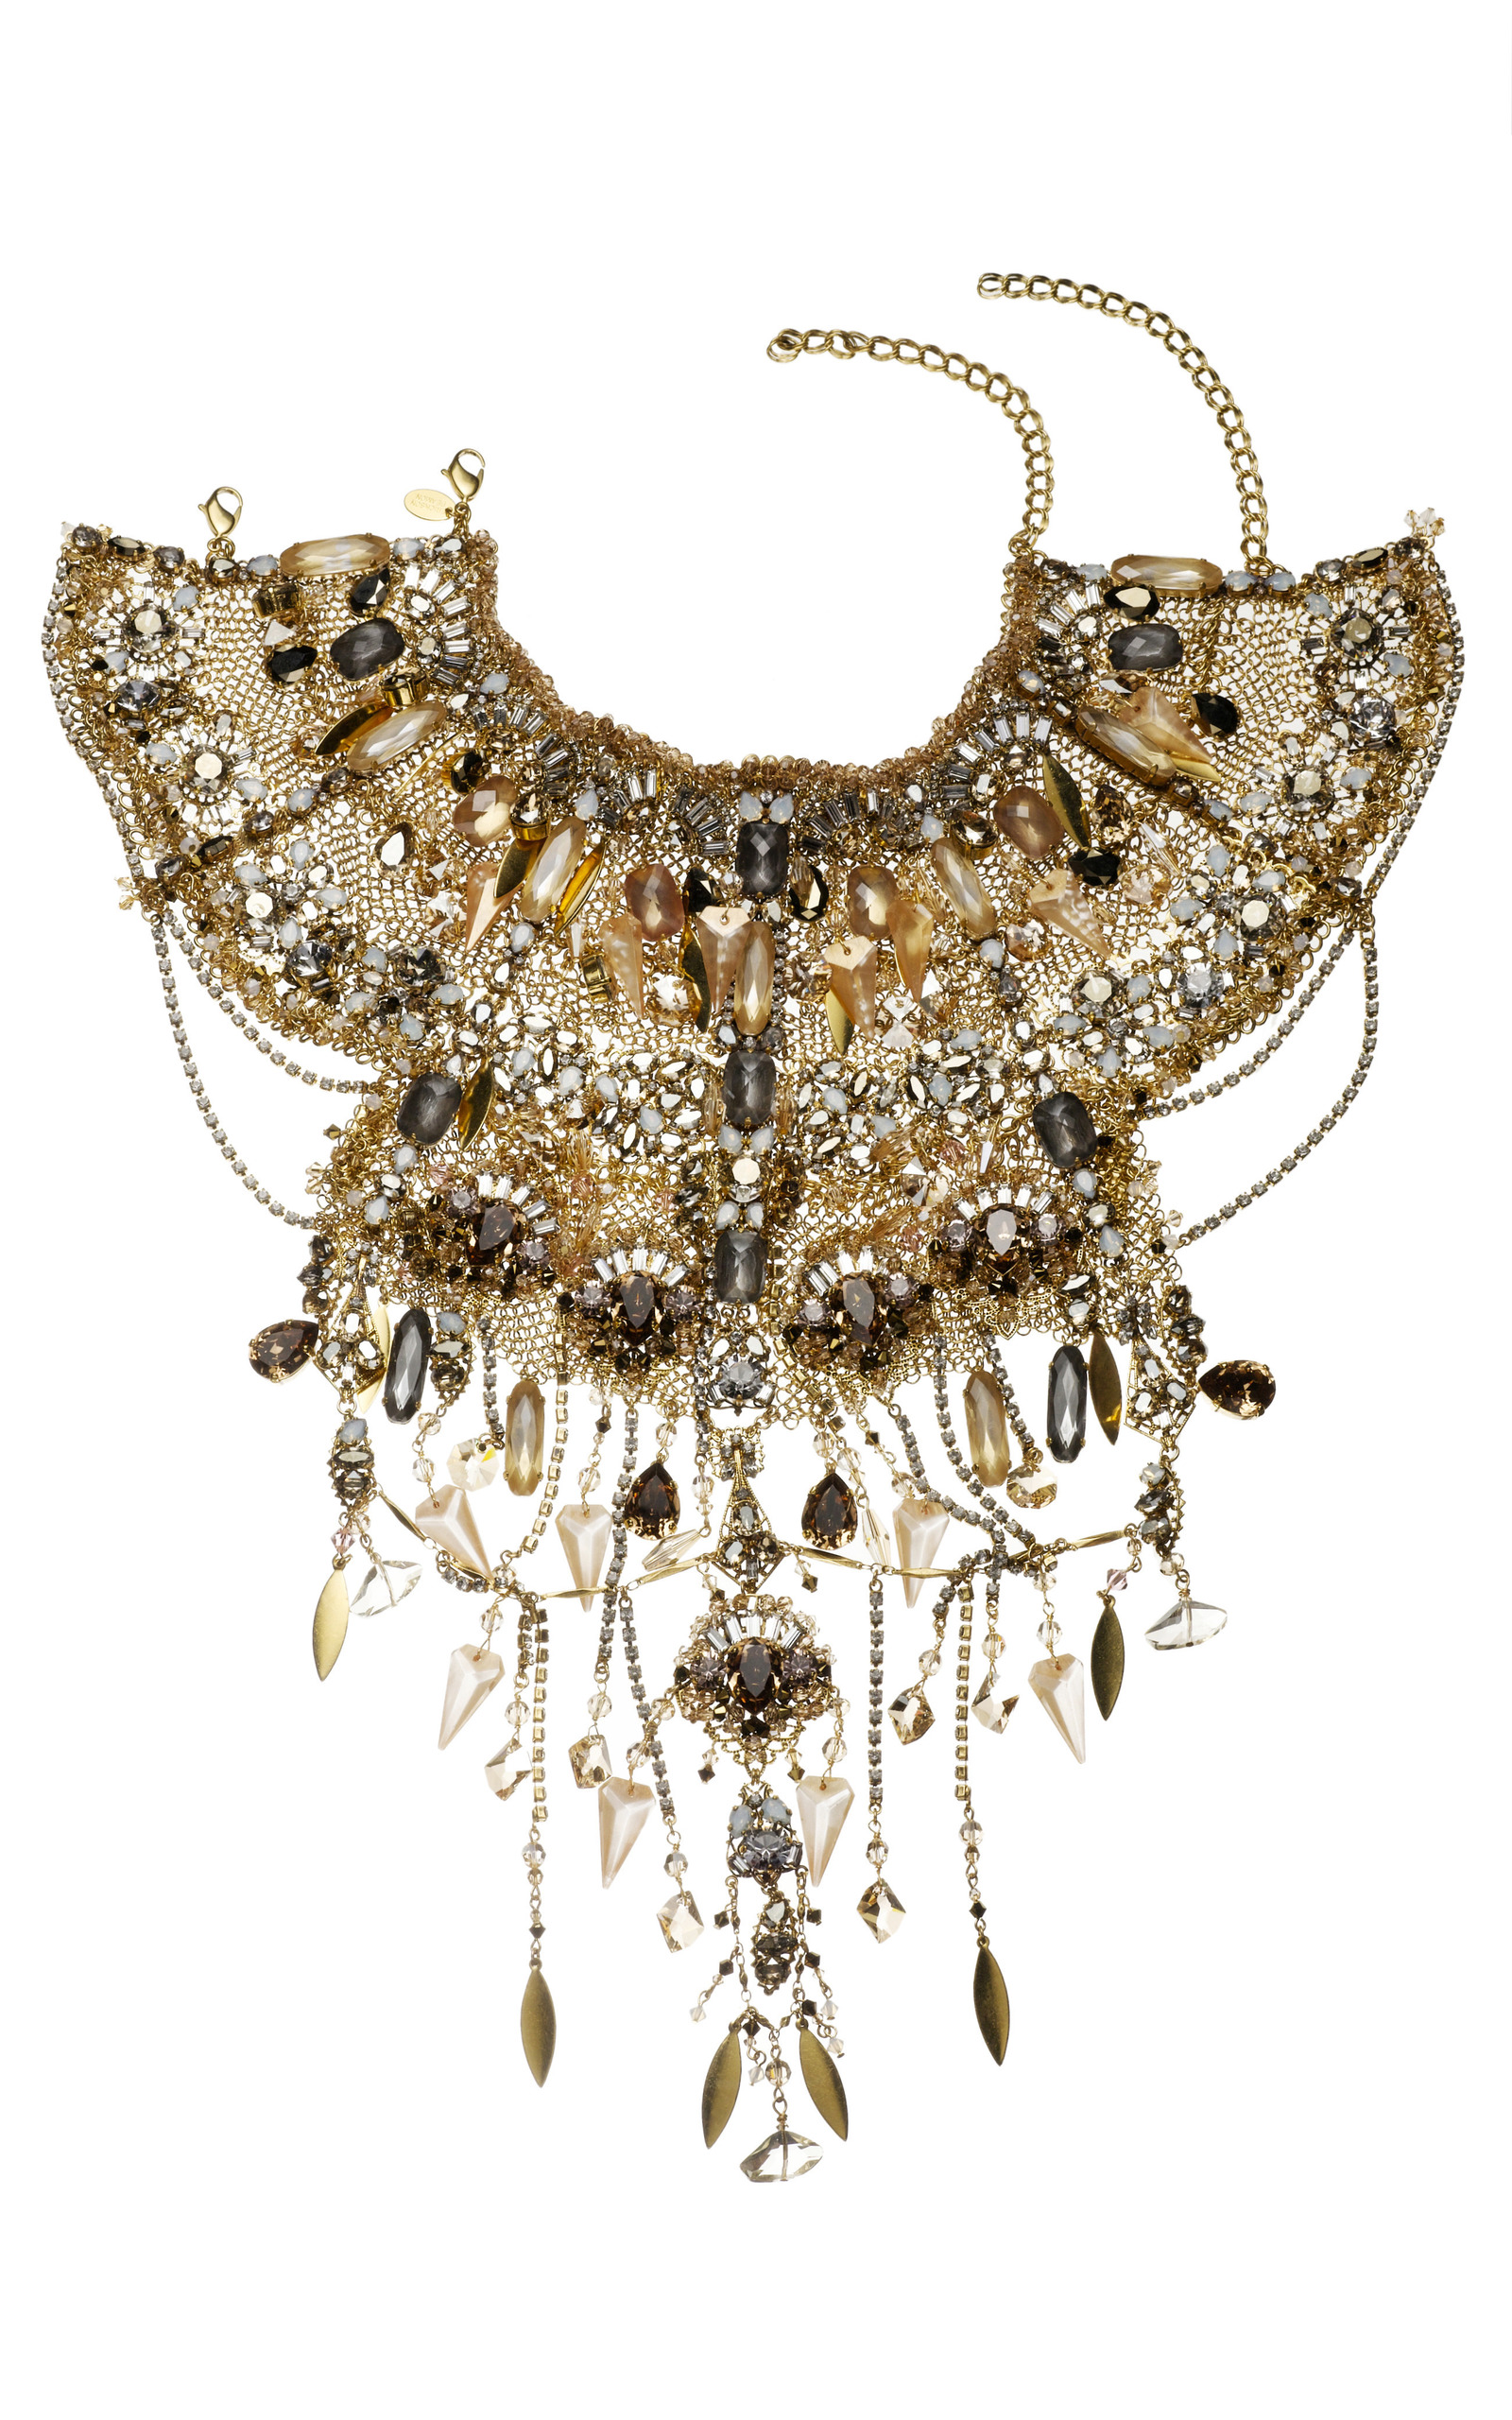 File:Erickson-beamon-fall-2011-necklace-profile.jpg